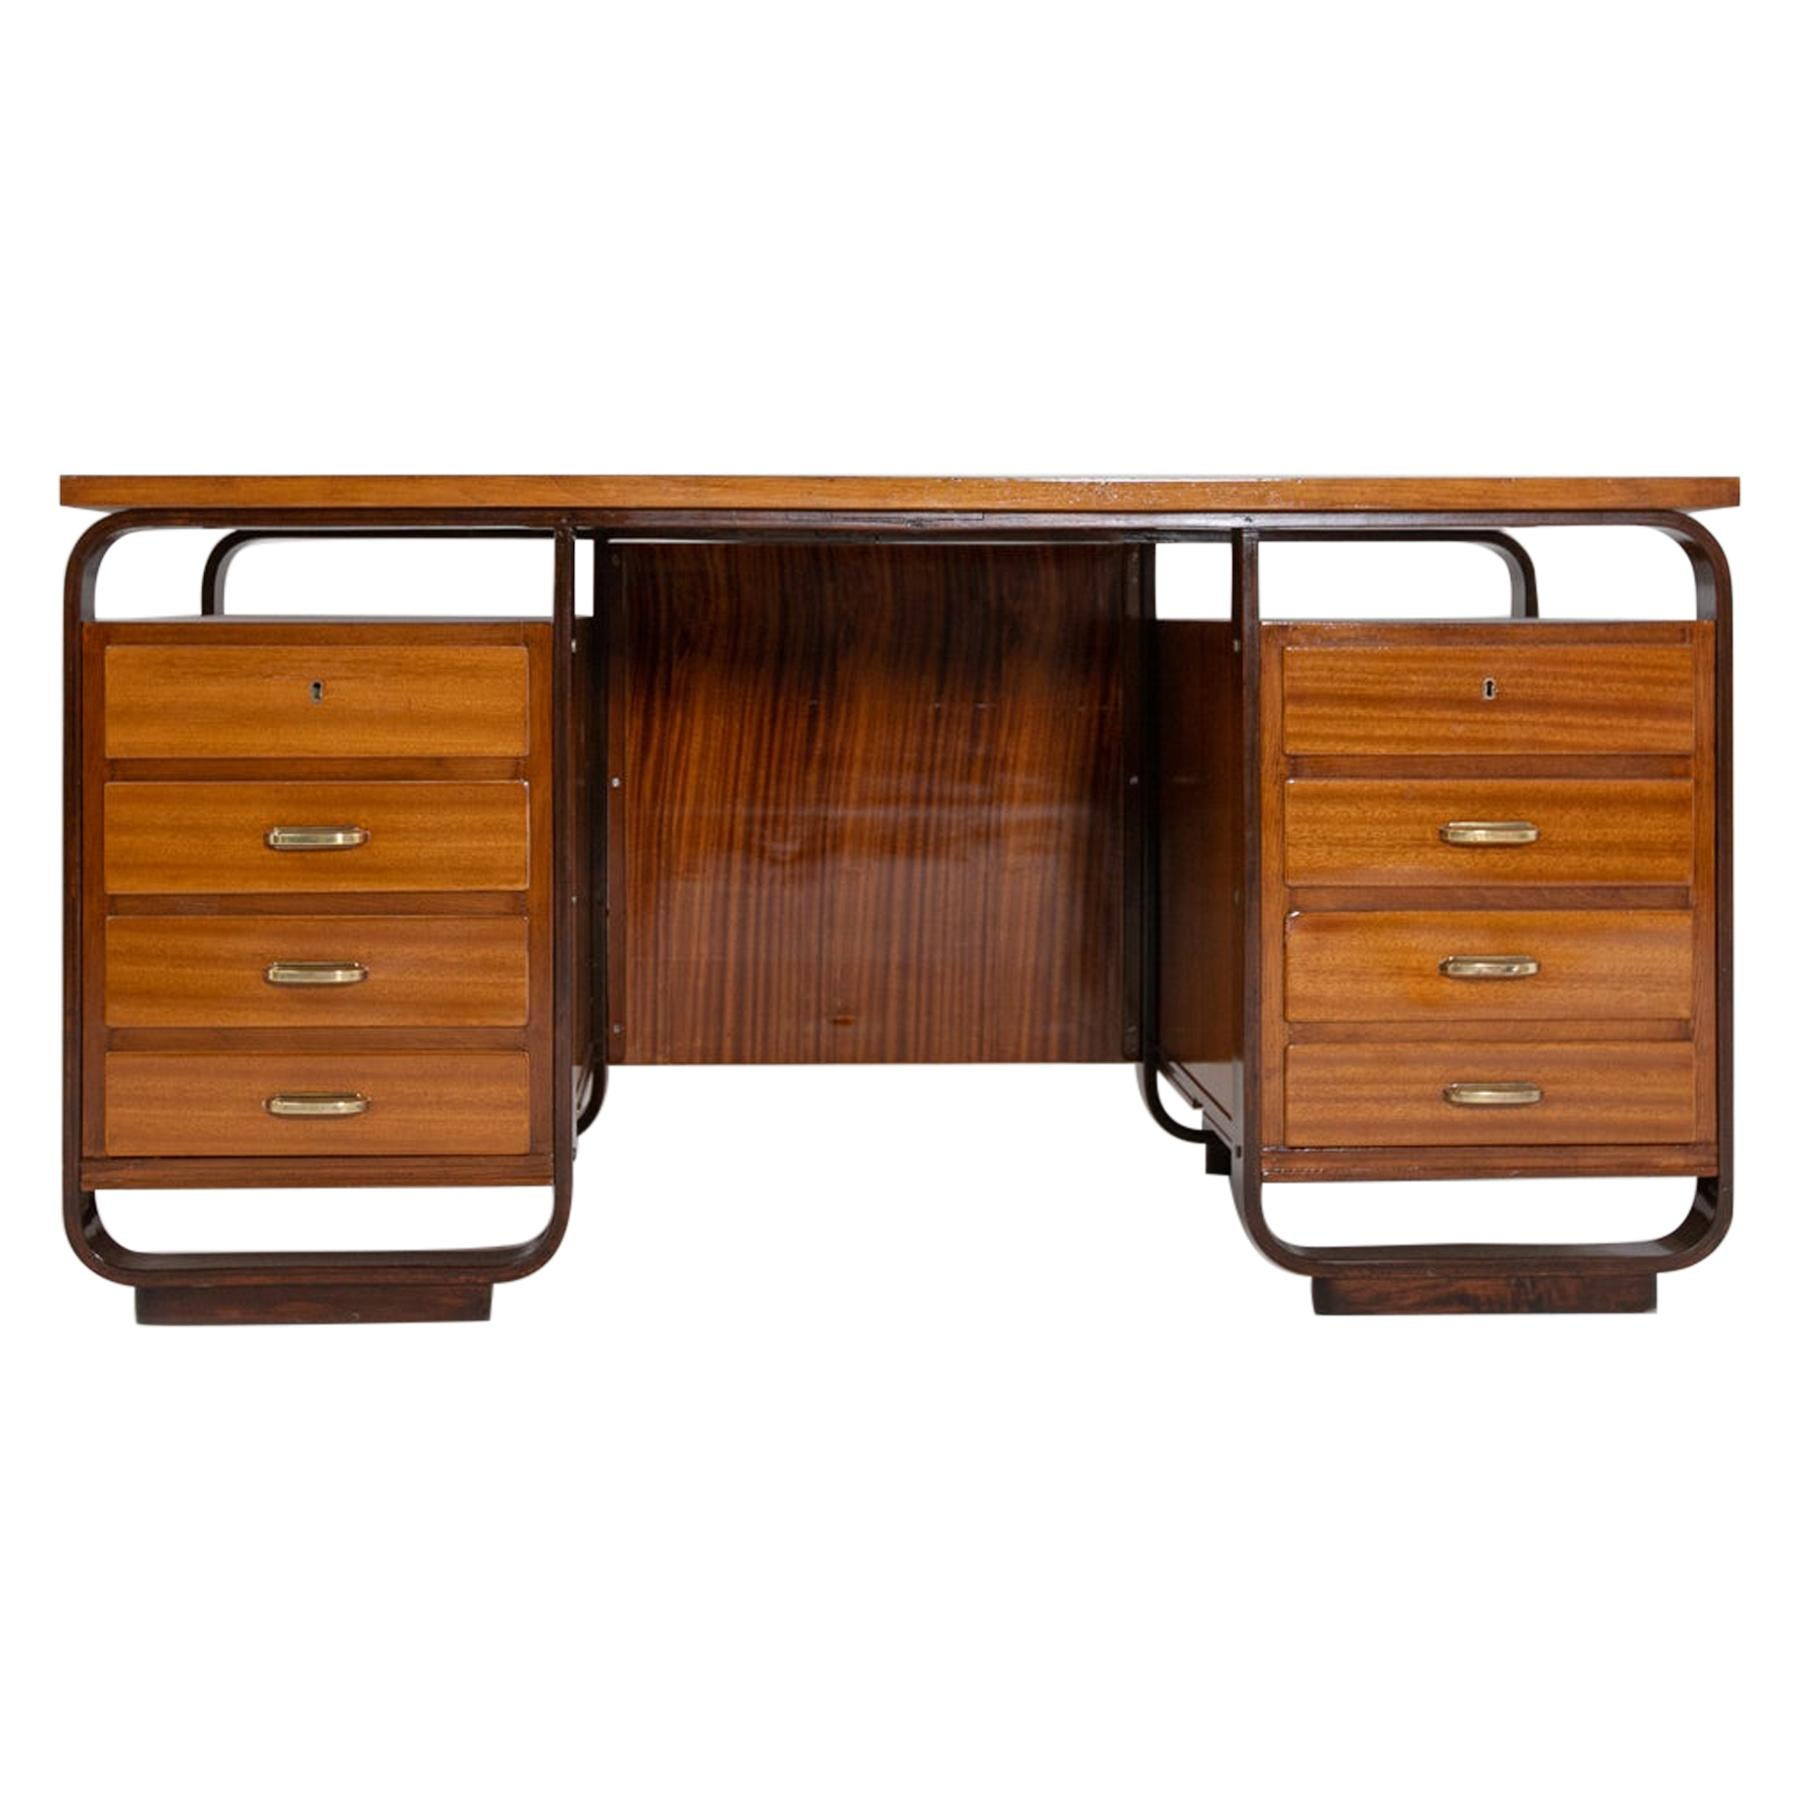 Desk by Giuseppe Pagano in Brass and Wood, Restored 1940s